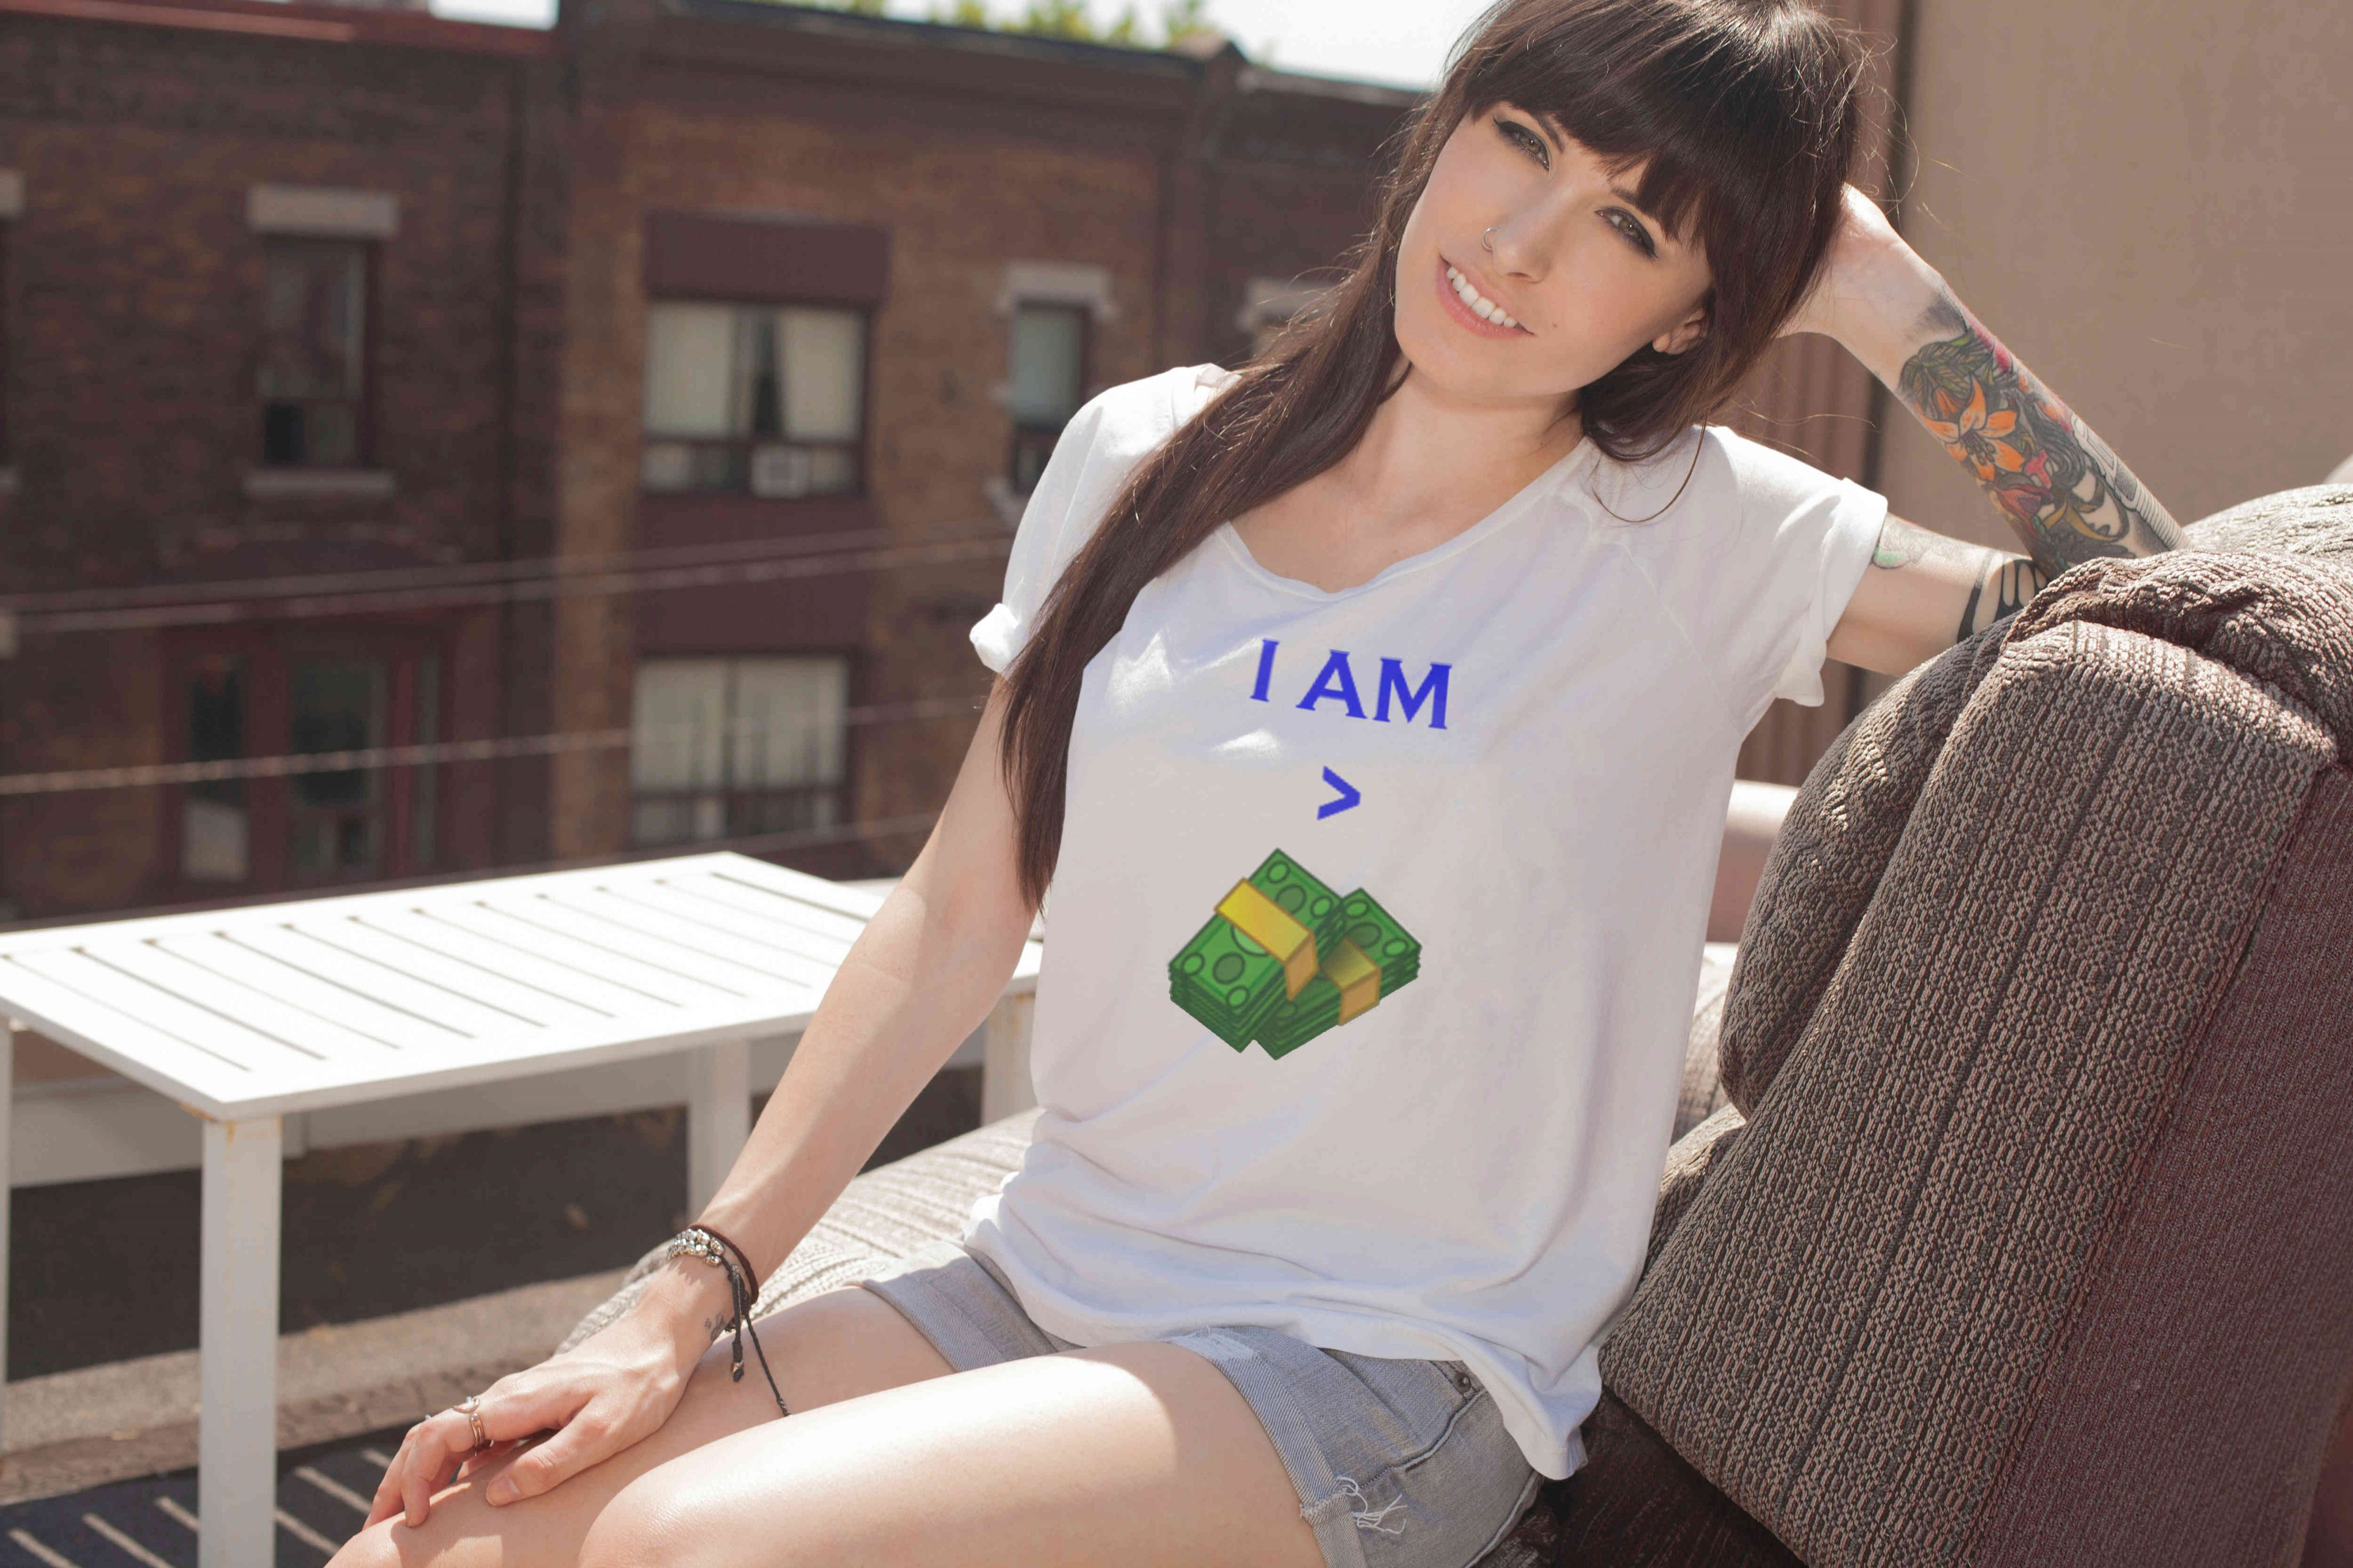 Women with T-shirt showing an inscription that she is greater than Money